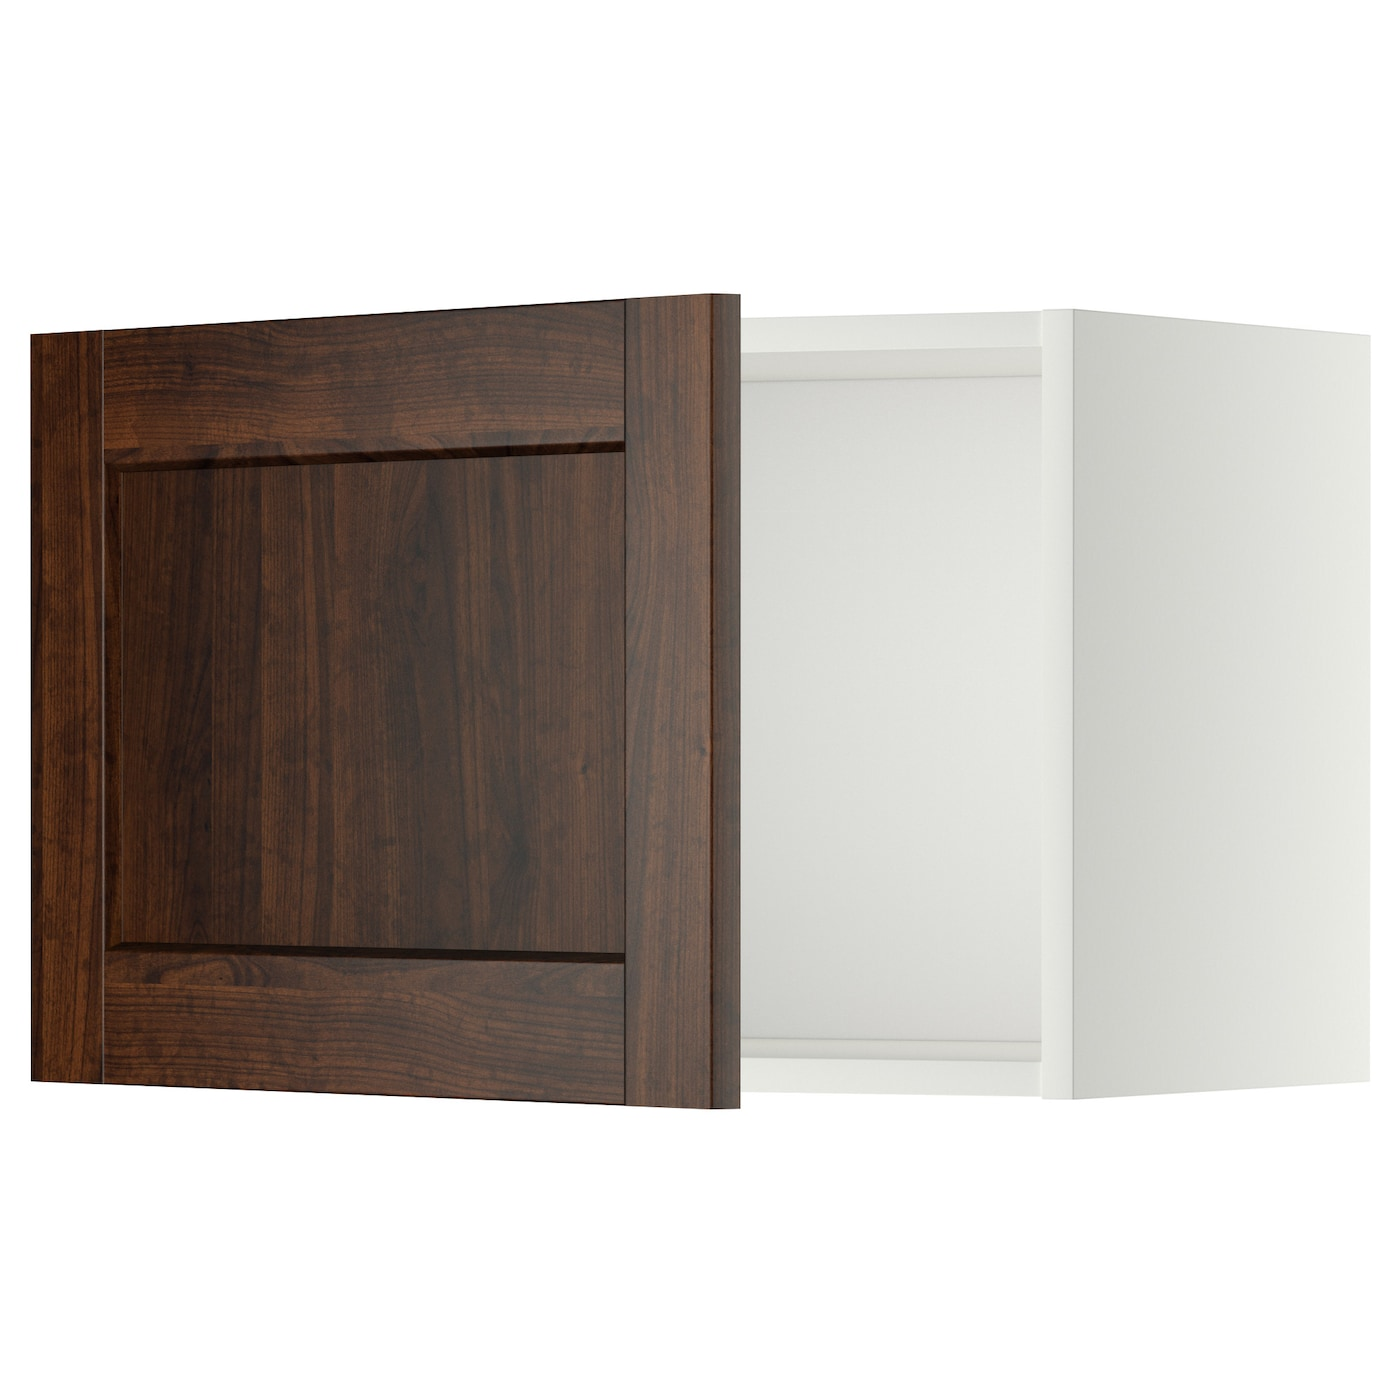 ikea vattern bathroom cabinet metod wall cabinet white edserum brown 60x40 cm ikea 17755